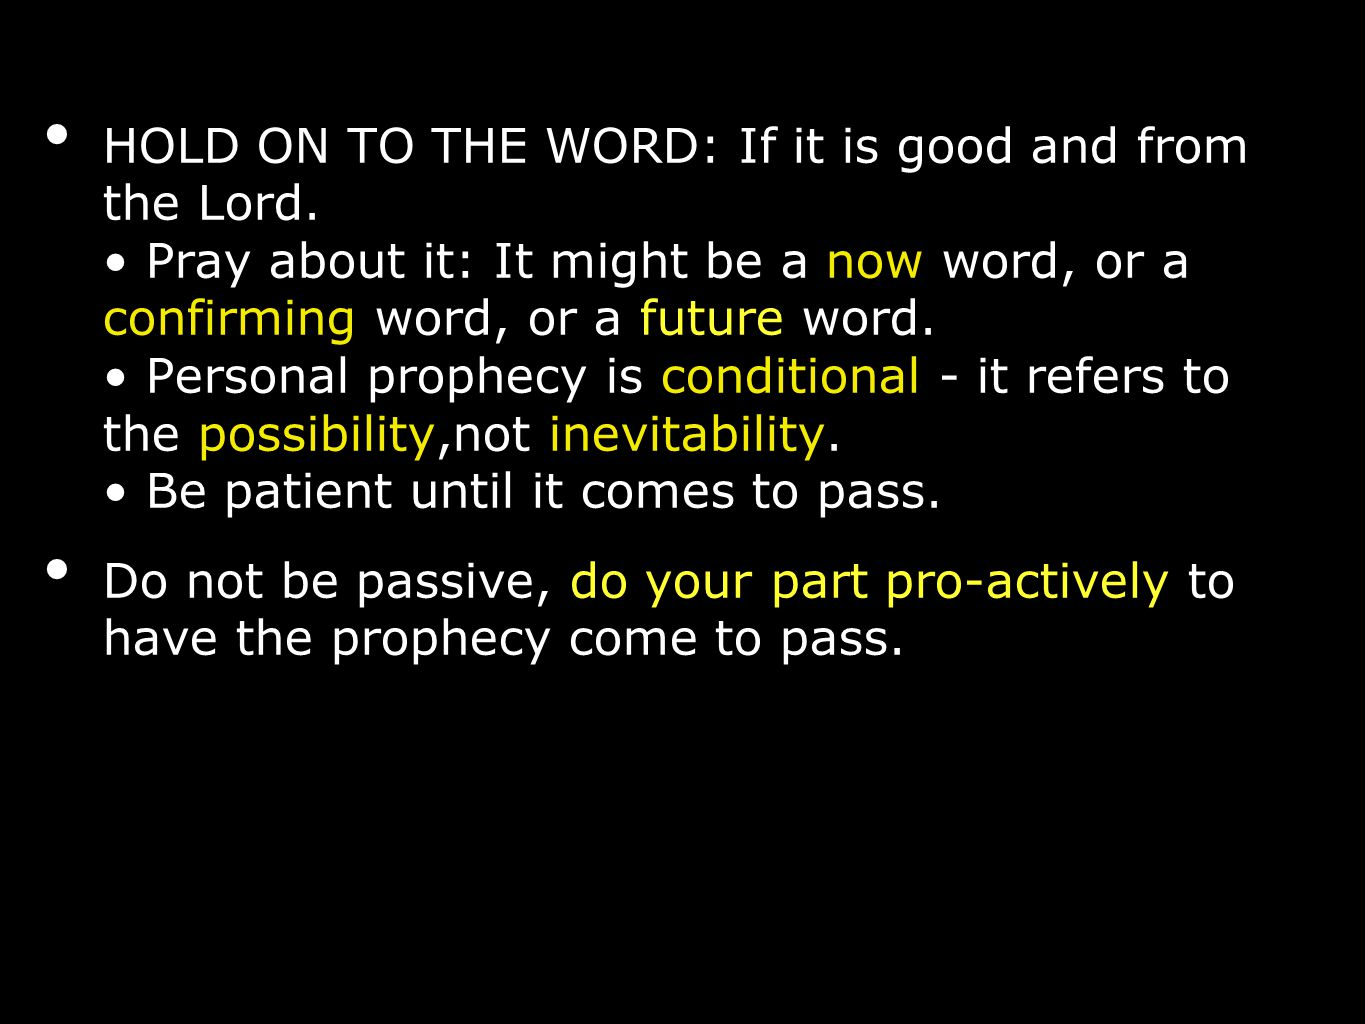 HOLD ON TO THE WORD: If it is good and from the Lord